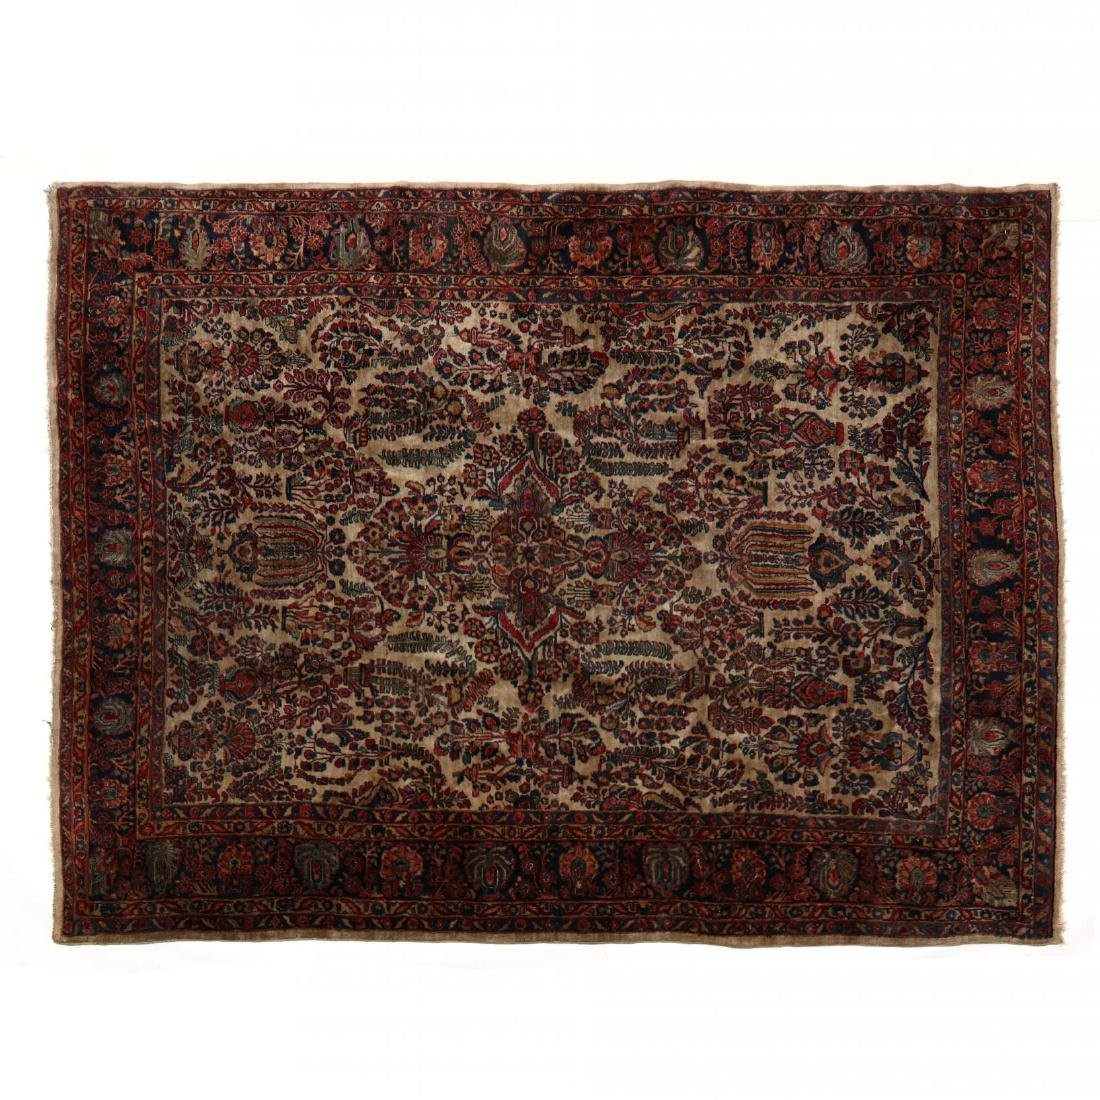 Ivory Field Sarouk Carpet